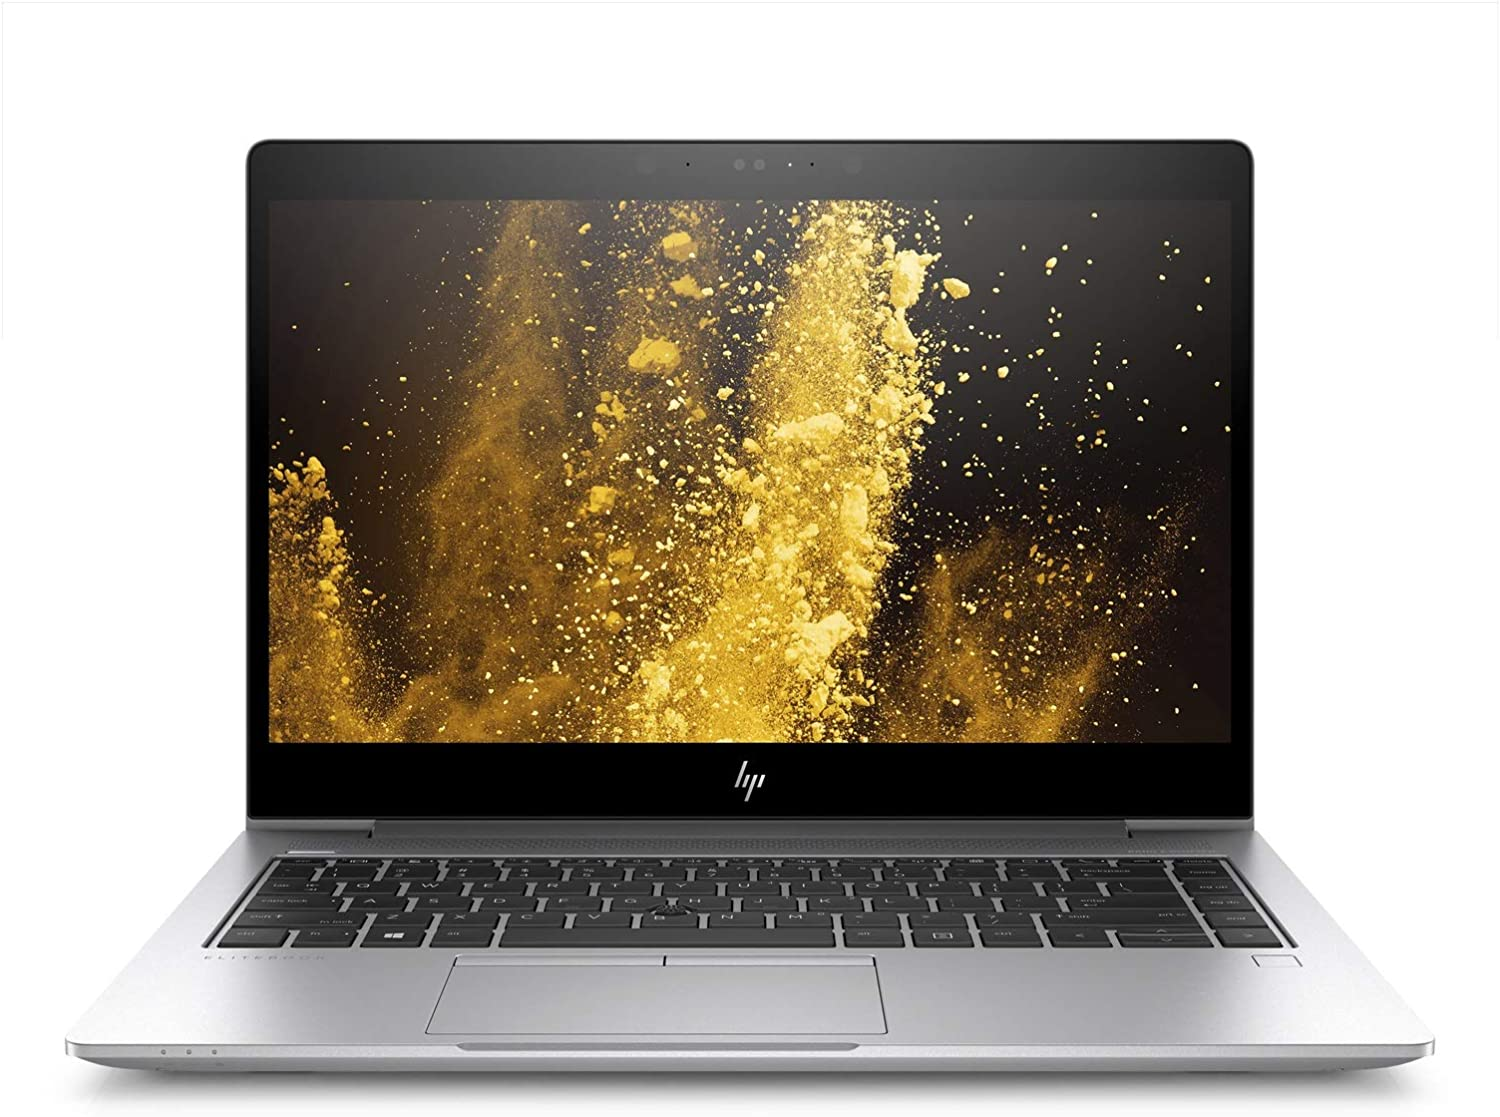 "HP Elitebook 840 G5 - 14"" FHD - i5-8350U Quad Core - 8 GB RAM - 256 SSD - Windows 10 Pro 64, 14-14.99 inches"